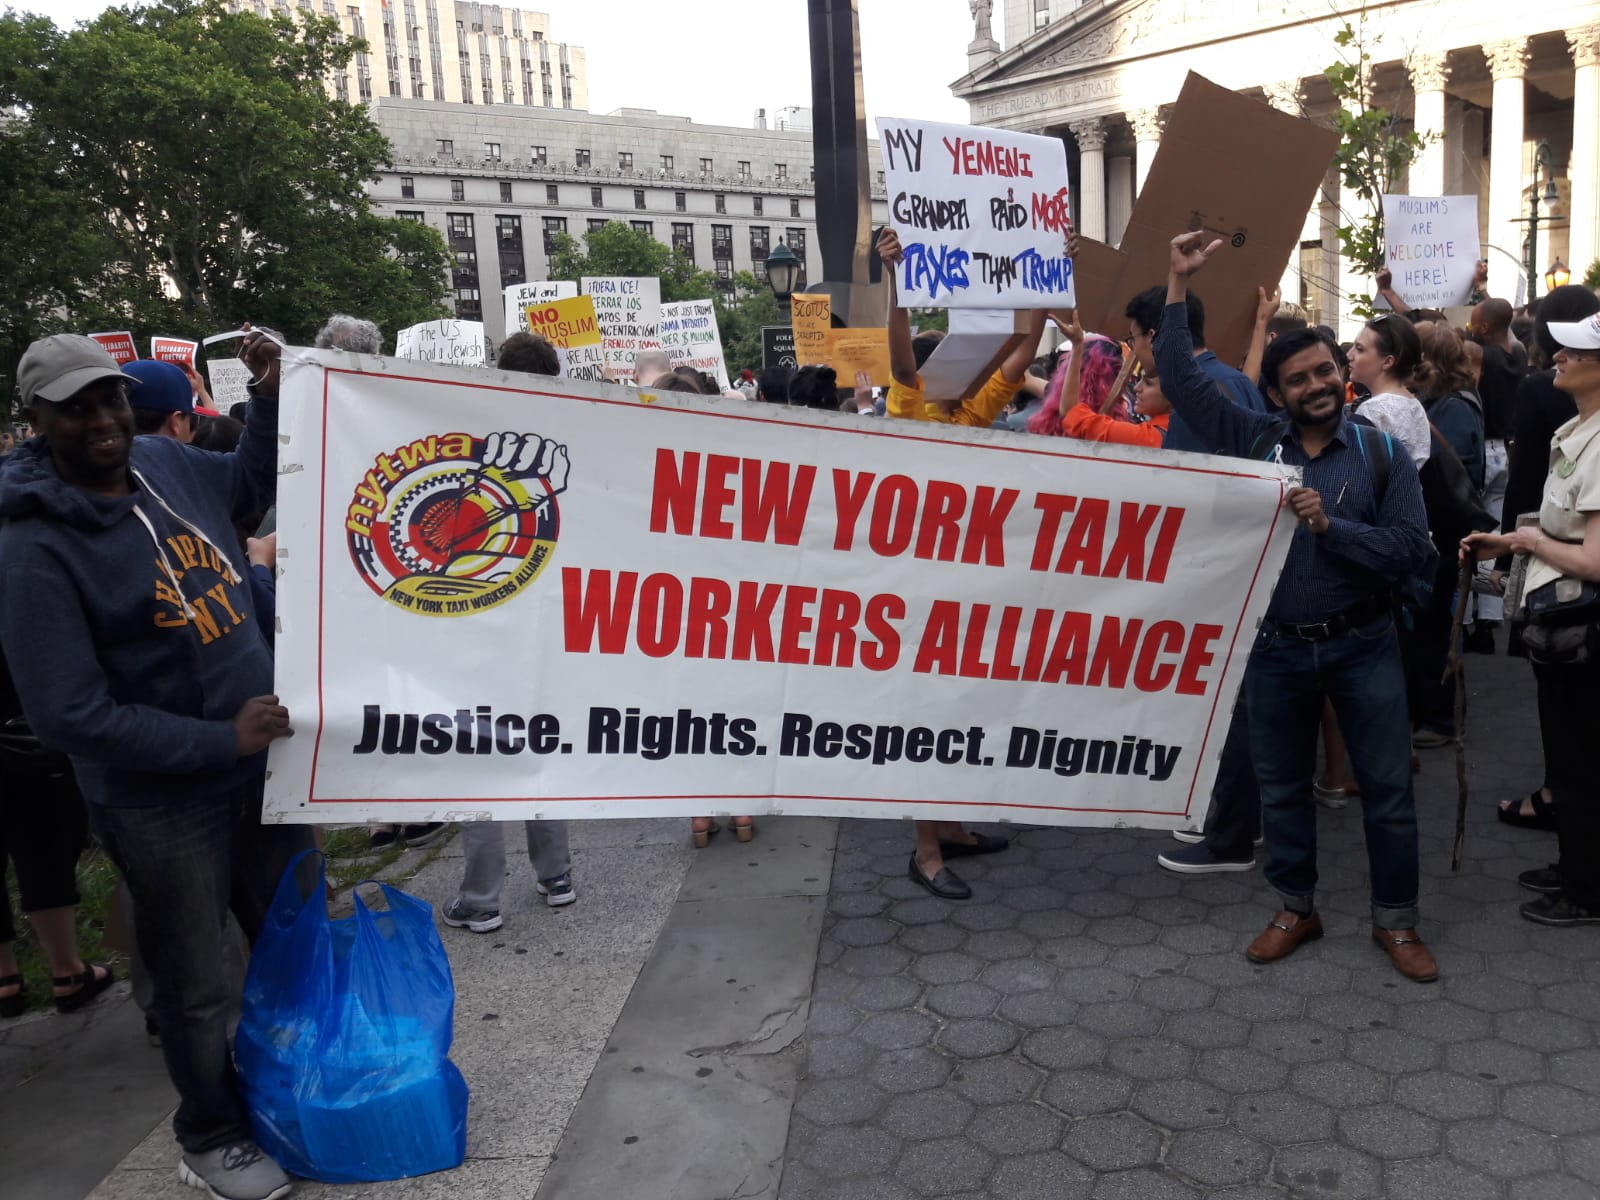 NYTWA Members stand in solidarity at Foley Square protest against Muslim Ban